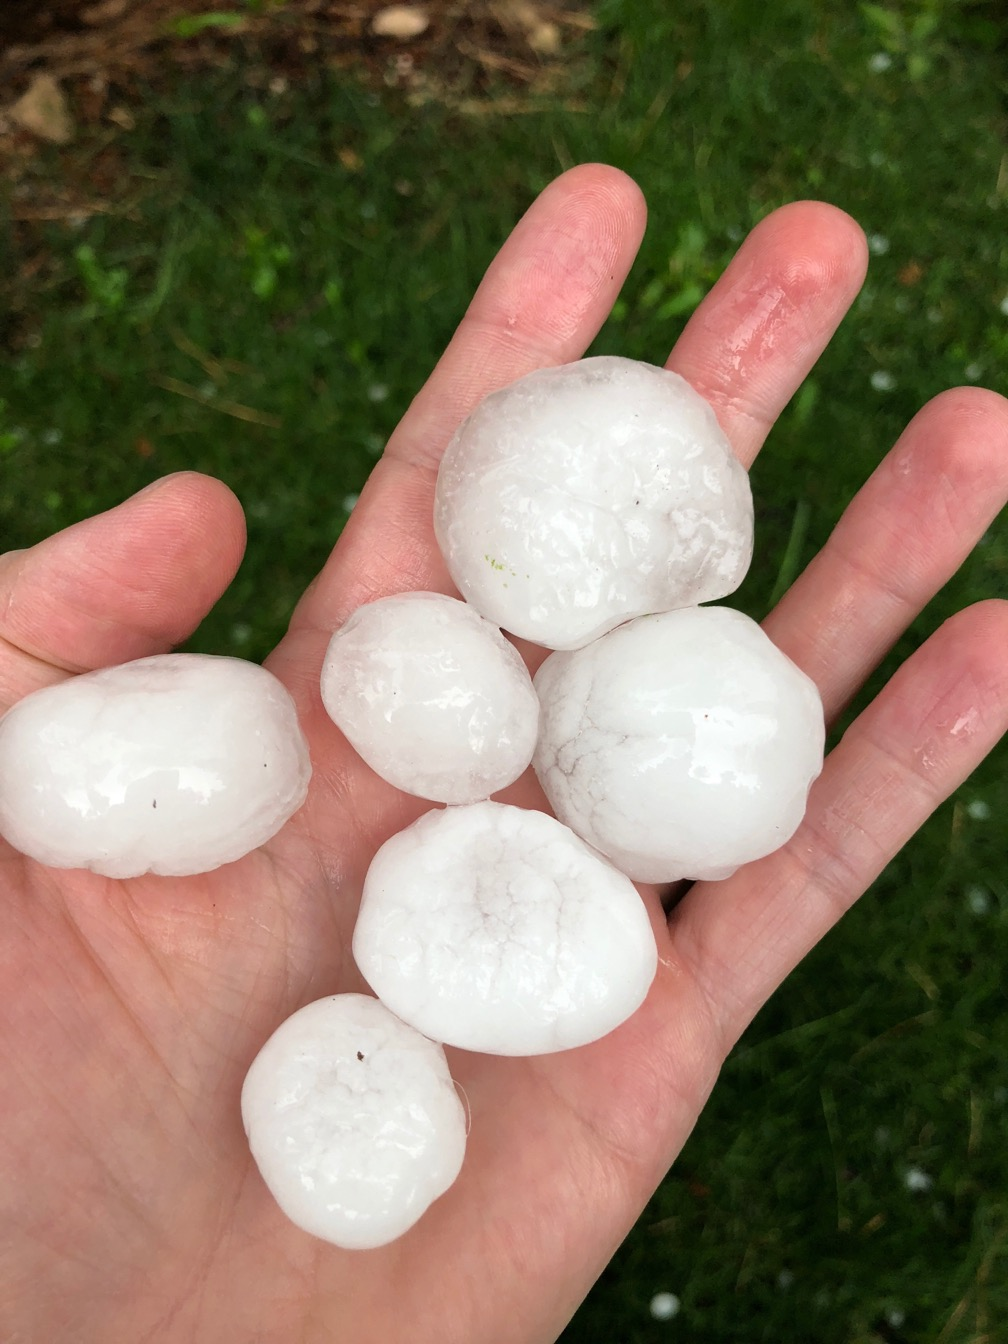 A photo of a handful of 1.5 inch hail in the palm of a hand.